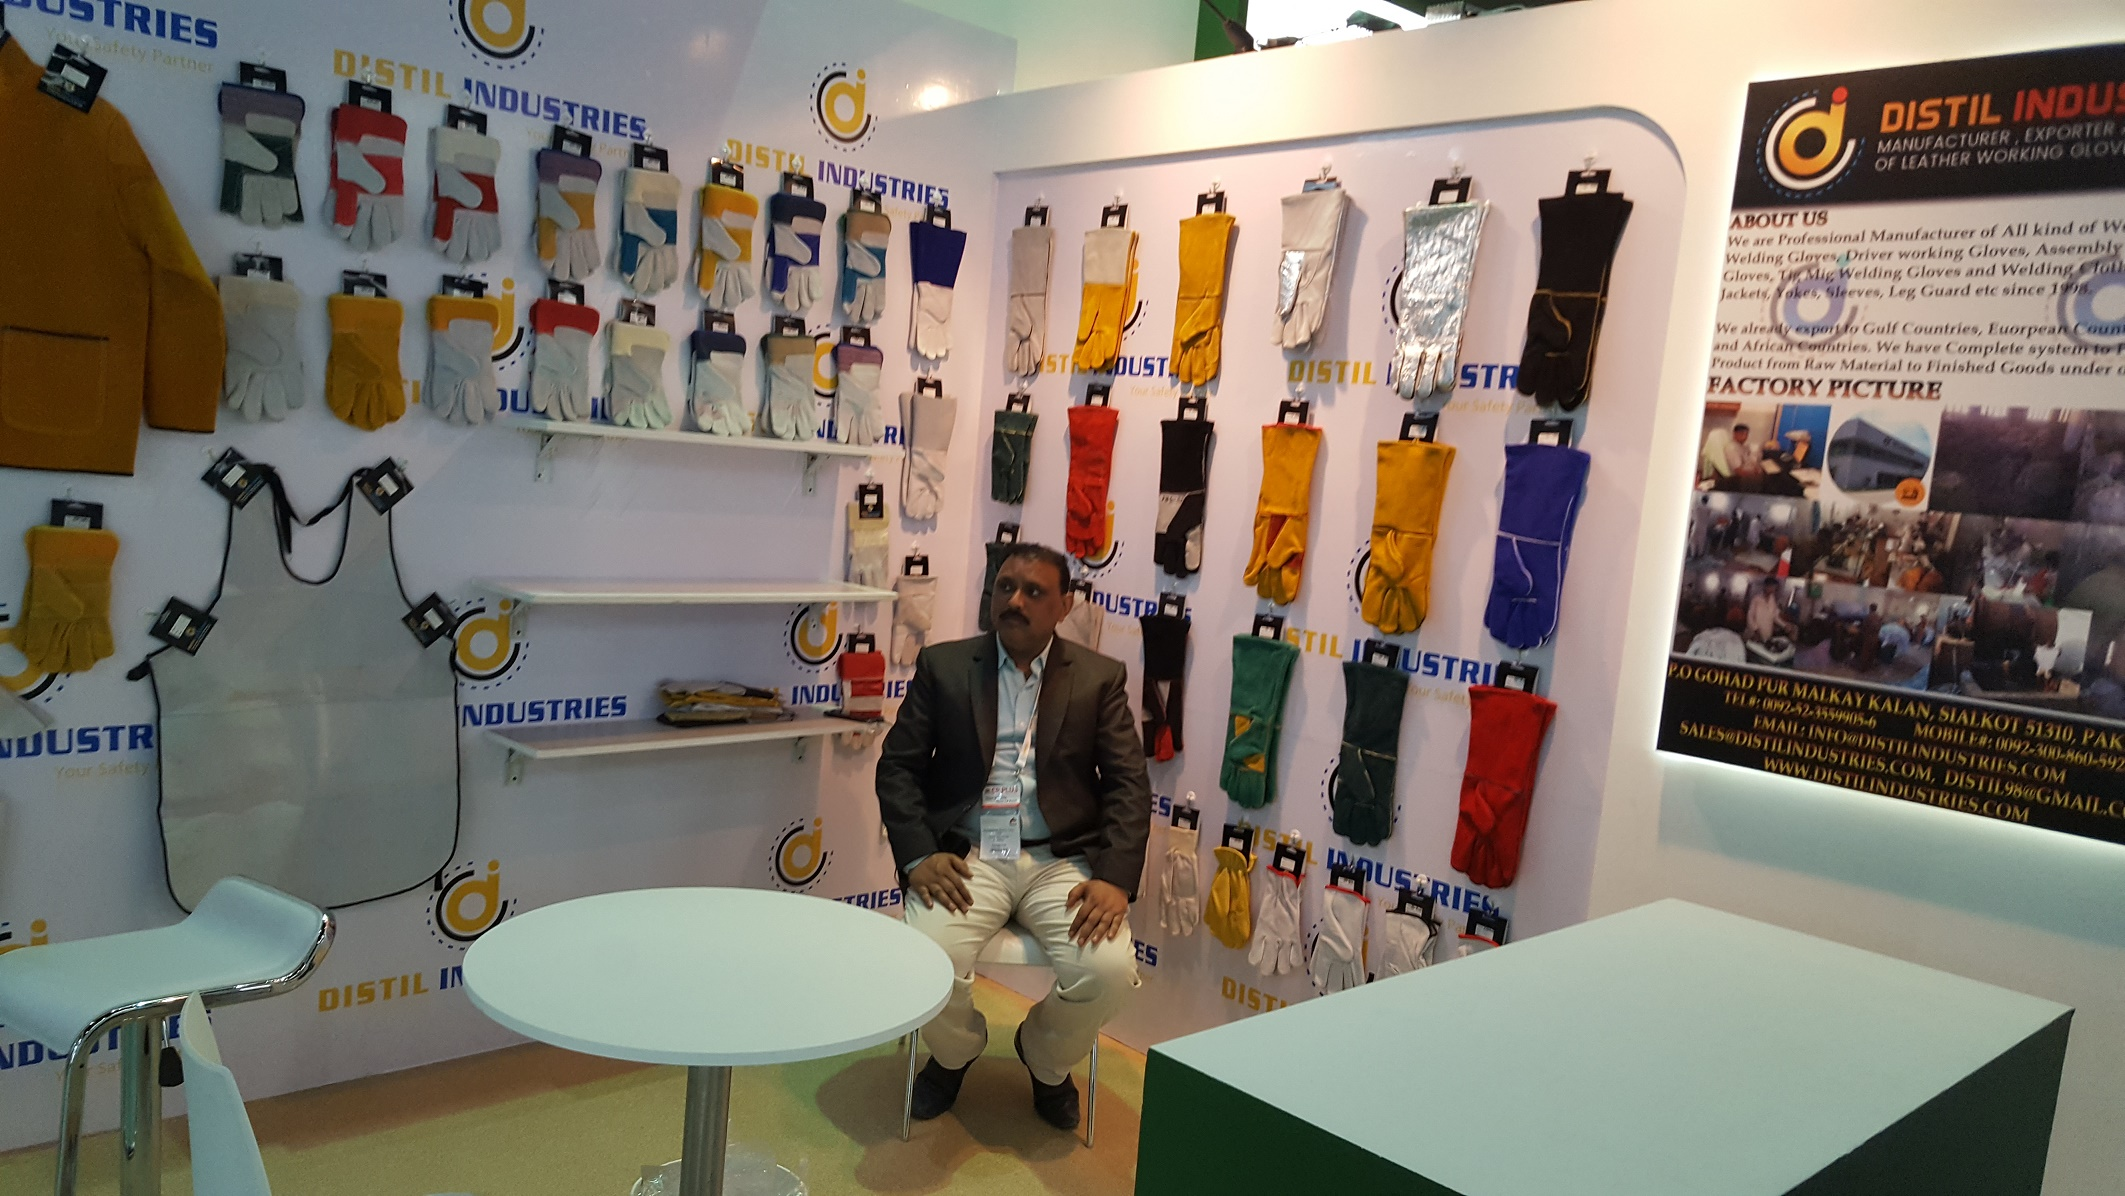 Intersec Exhibtion